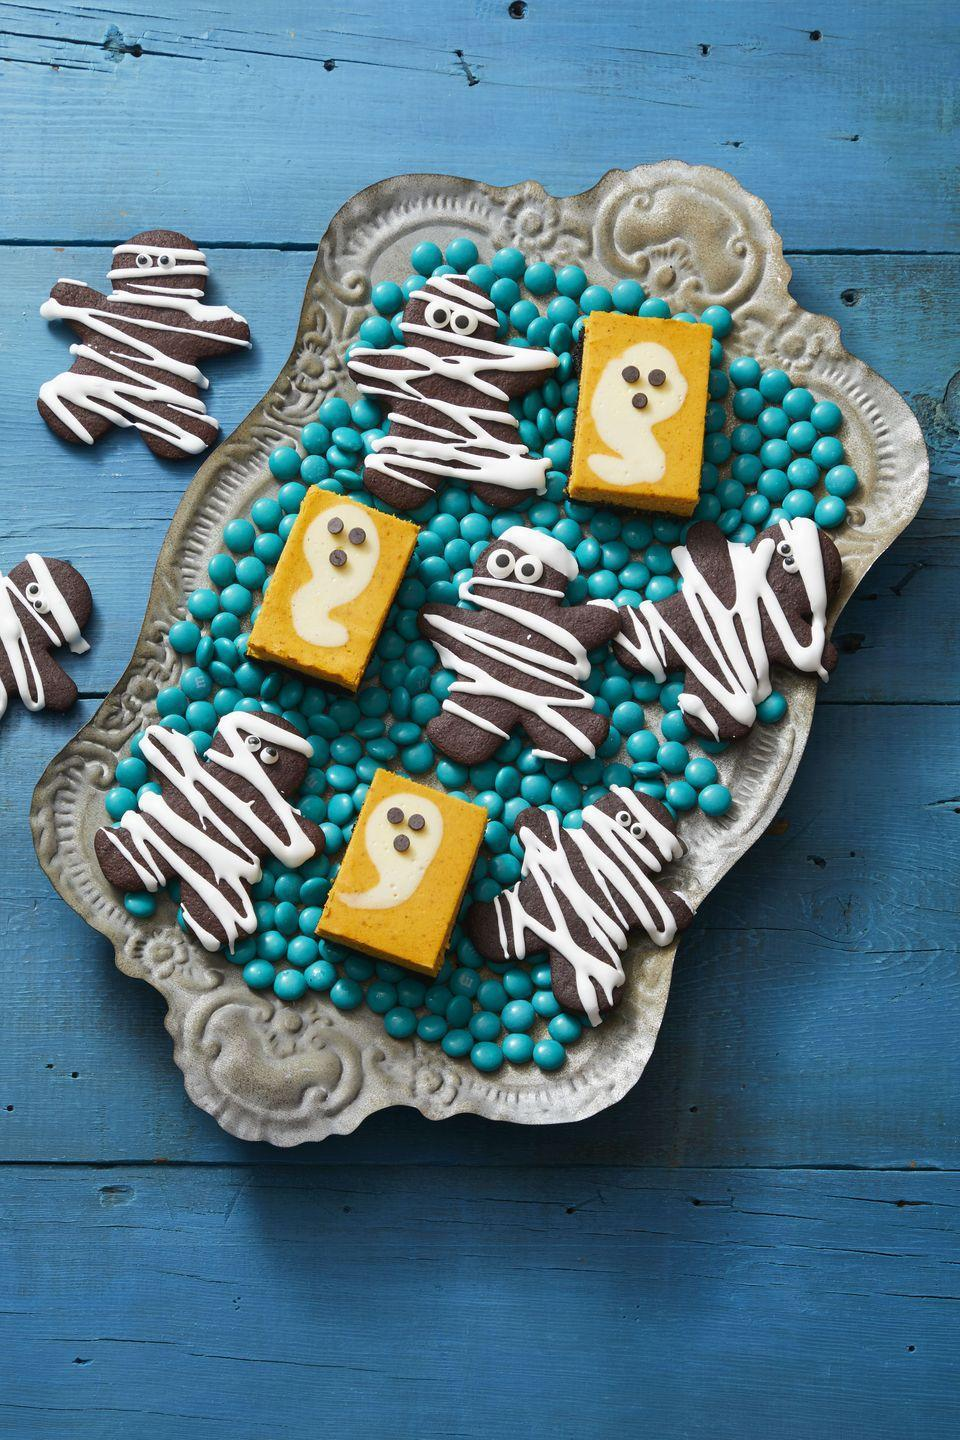 """<p>Your gingerbread man cookie cutter isn't just for Christmas — use it to make these creepy cookies, too.</p><p><a href=""""https://www.womansday.com/food-recipes/a33563511/double-chocolate-mummies-recipe/"""" rel=""""nofollow noopener"""" target=""""_blank"""" data-ylk=""""slk:Get the Double Chocolate Mummies recipe."""" class=""""link rapid-noclick-resp""""><strong><em>Get the Double Chocolate Mummies recipe.</em></strong></a></p>"""